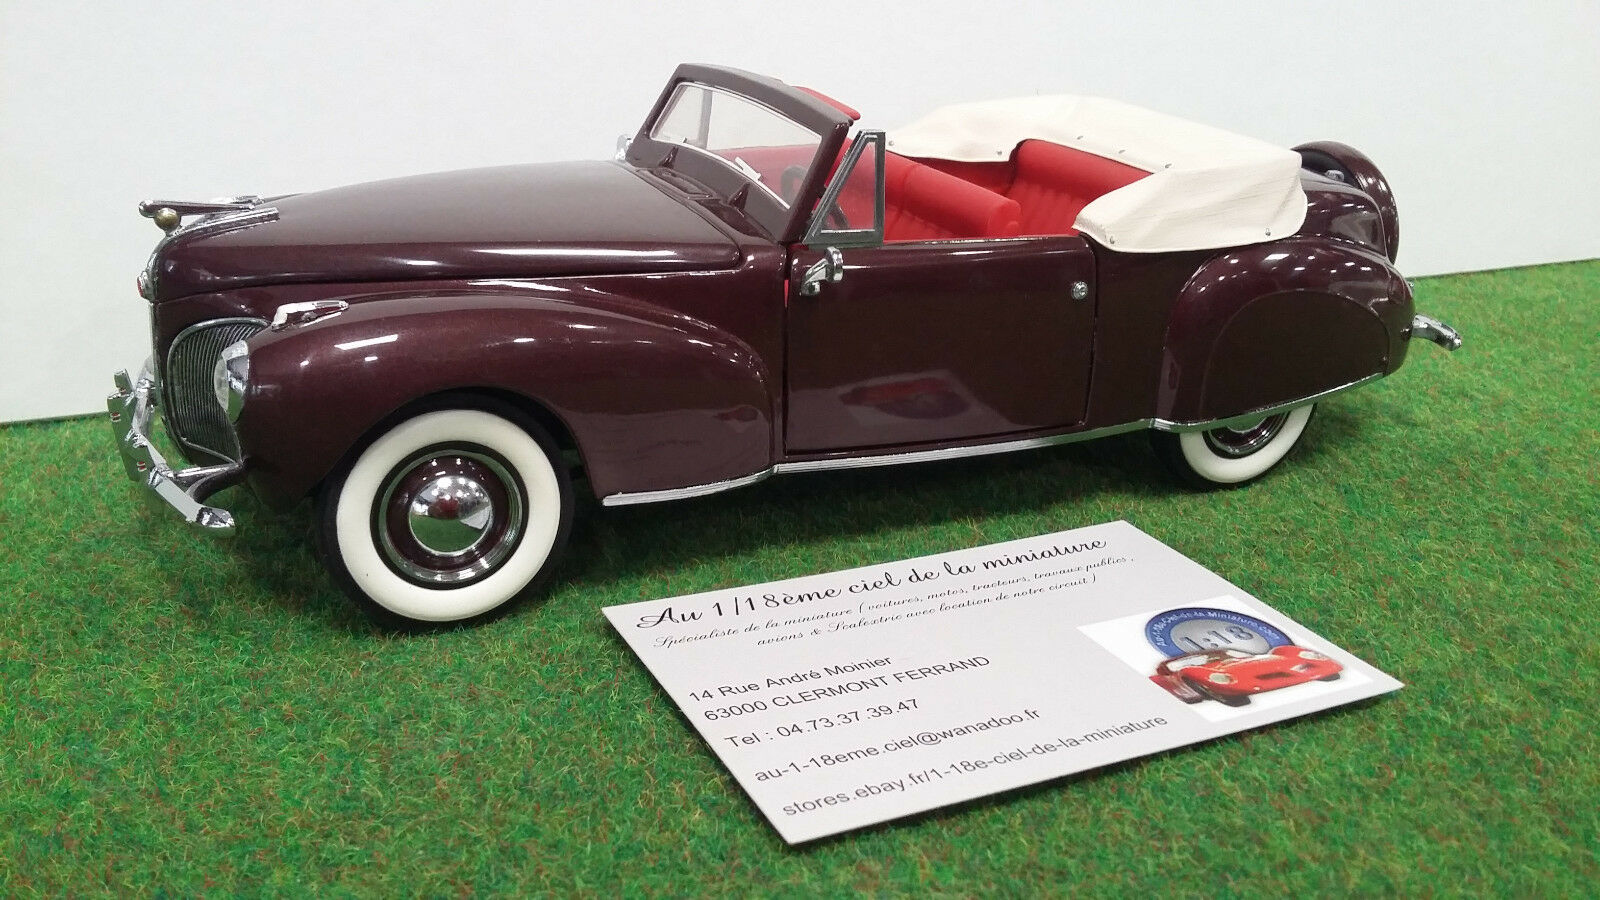 LINCOLN CONTINENTAL cabriolet 1941 1 24 FRANKLIN MINT voiture miniature collecti